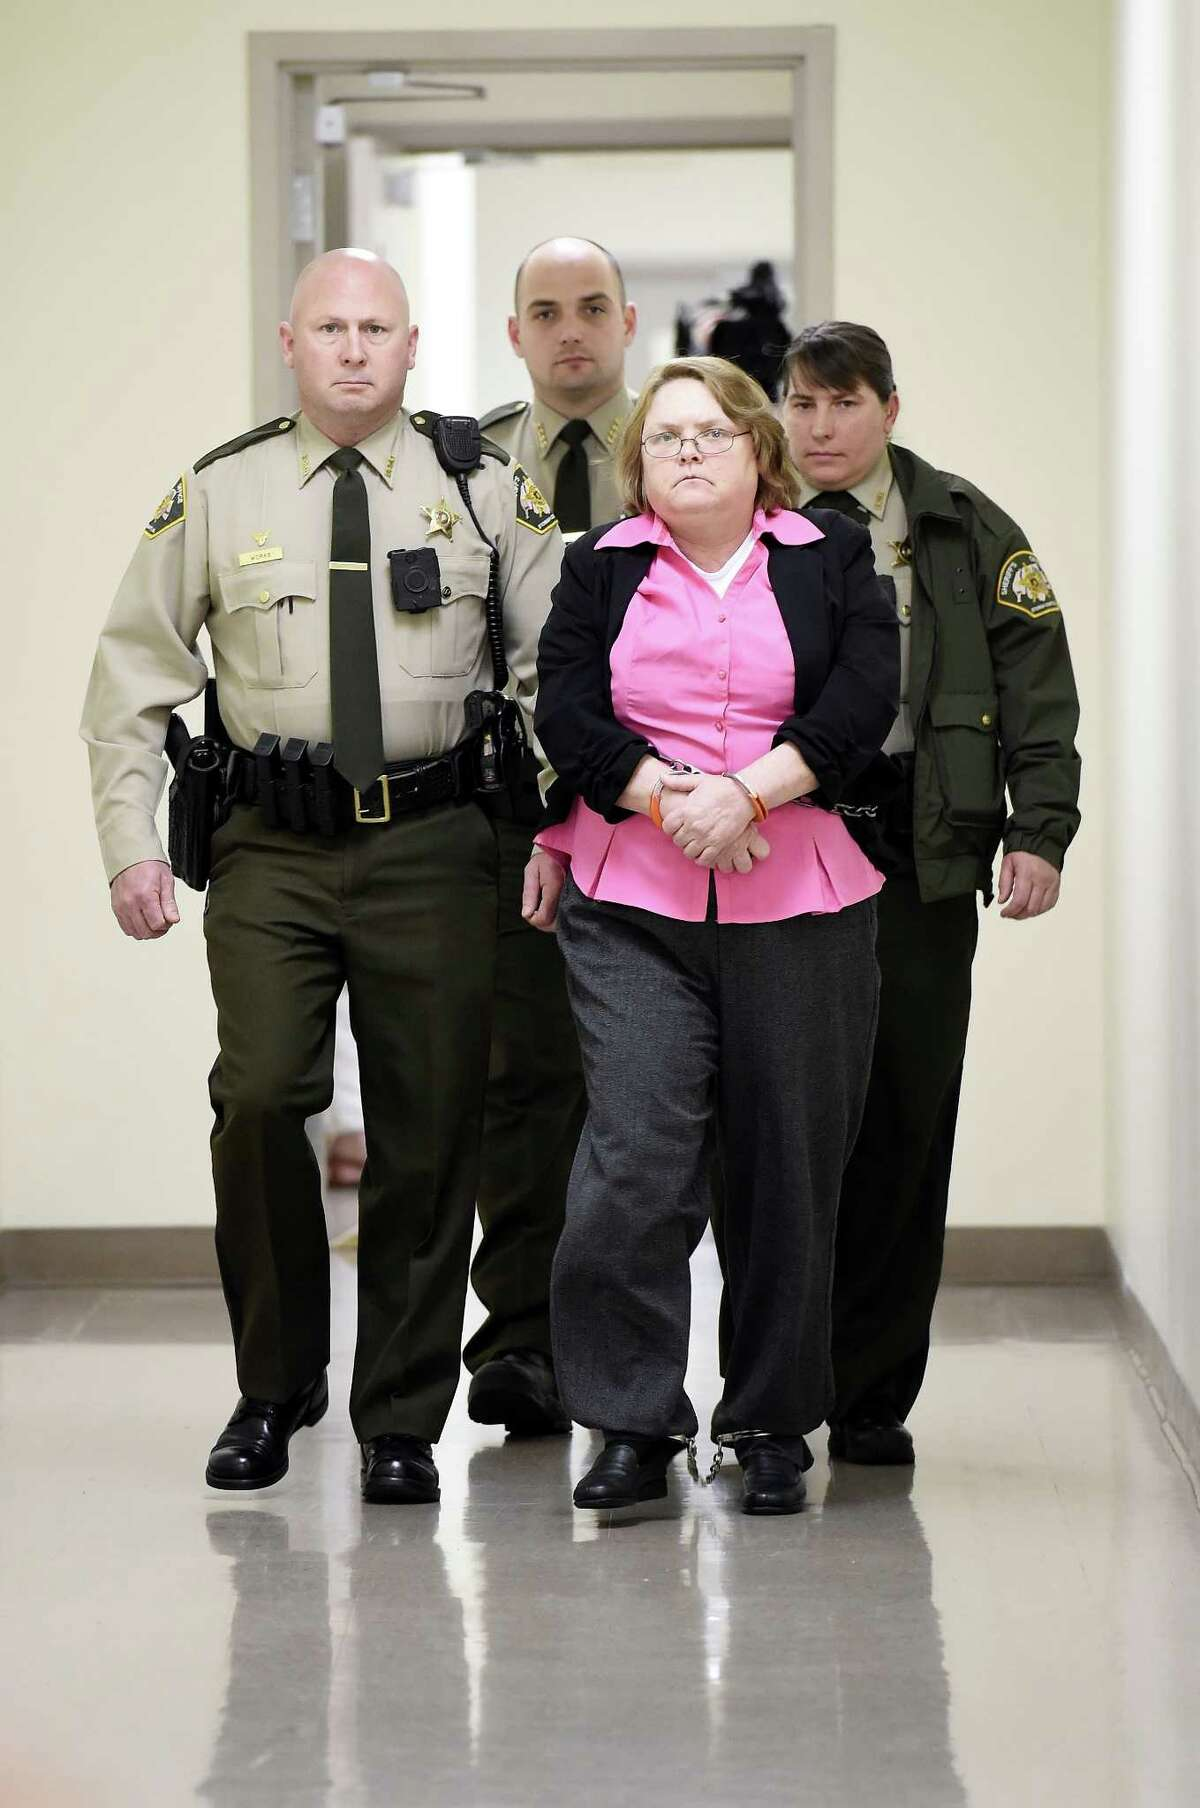 Joyce Hardin Garrard is led back to the Etowah County Detention Center in Gadsden, Ala. on Thursday, March 26, 2015, after a jury recommended she be sentenced to life in prison following her capital murder conviction. Circuit Judge Billy Ogletree will sentence Garrard on May 11 for the death of 9-year-old granddaughter, Savannah Hardin. (AP Photo/Gadsden Times, Eric T. Wright)